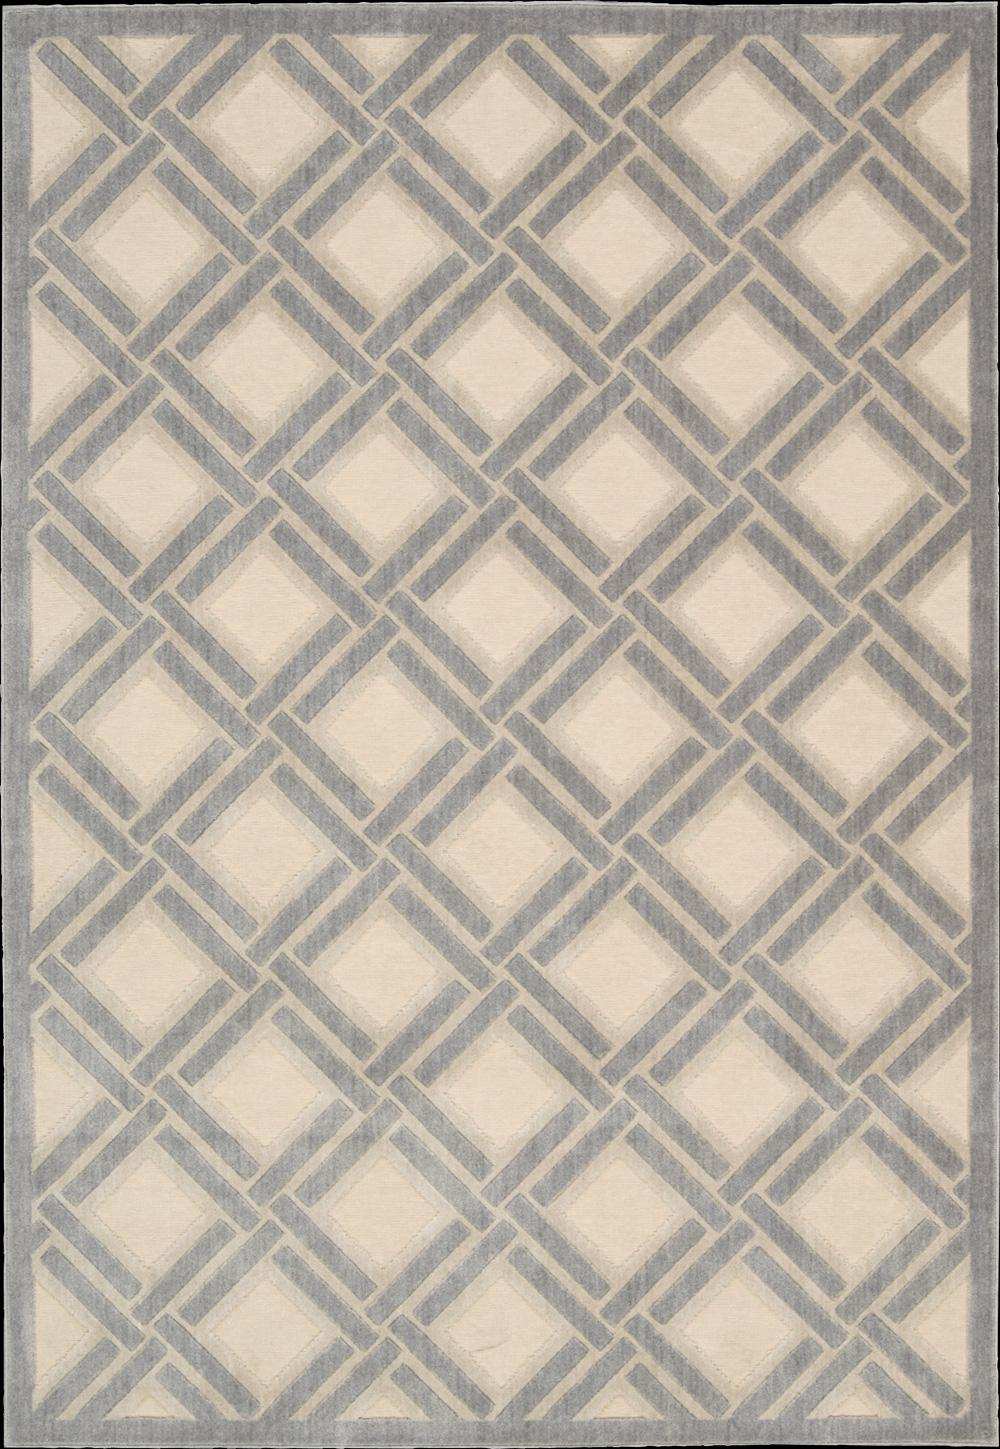 "Nourison Graphic Illusions Area Rug 3'6"" x 5'6"" - Item Number: 16066"